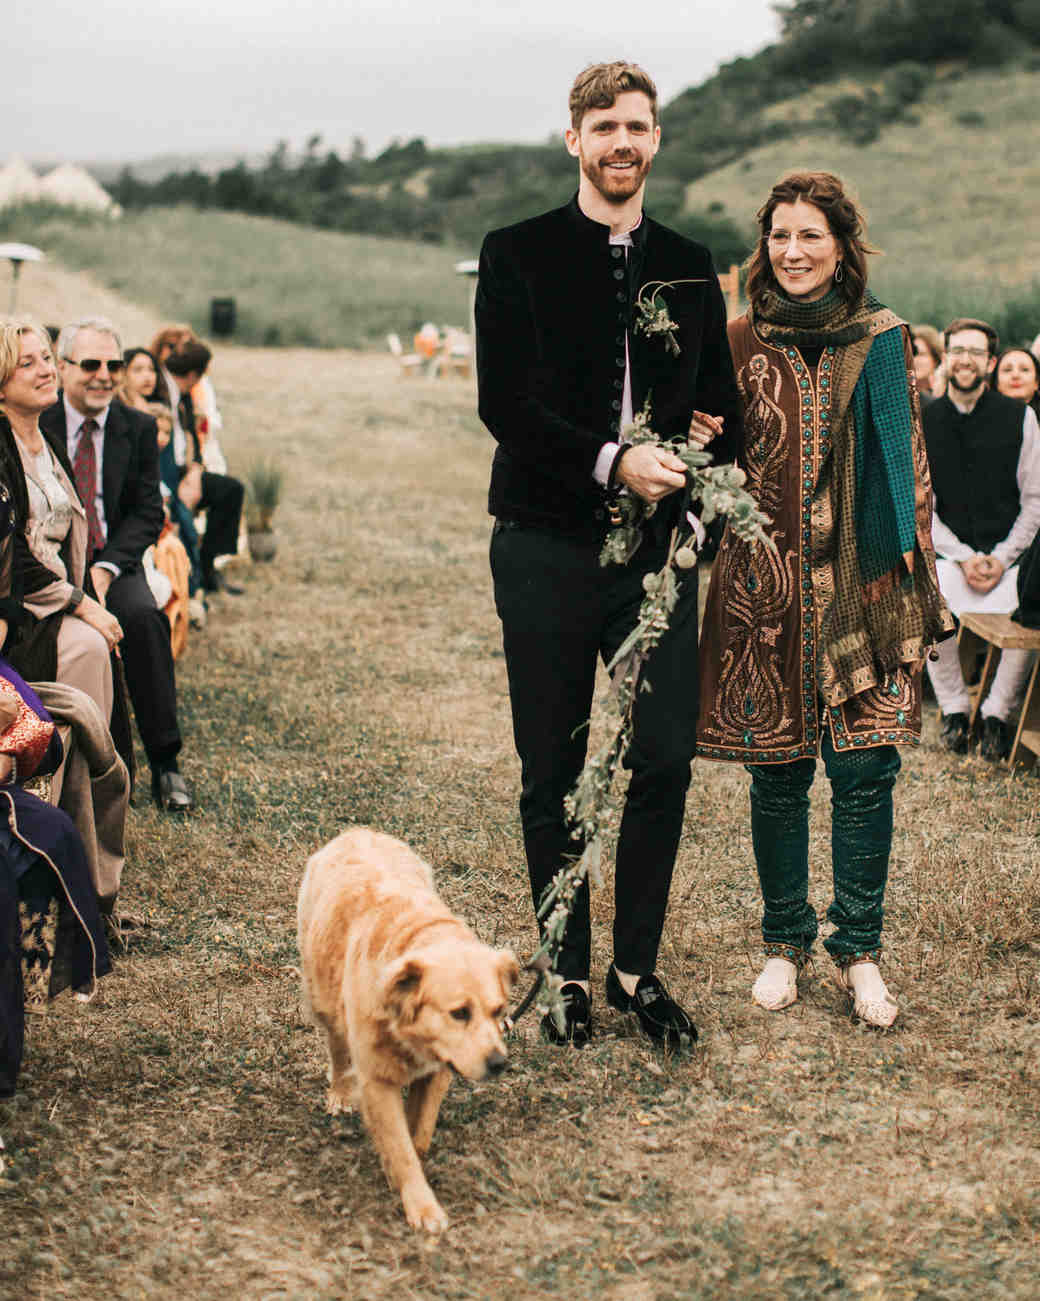 zai phil camping wedding processional mother groom dog